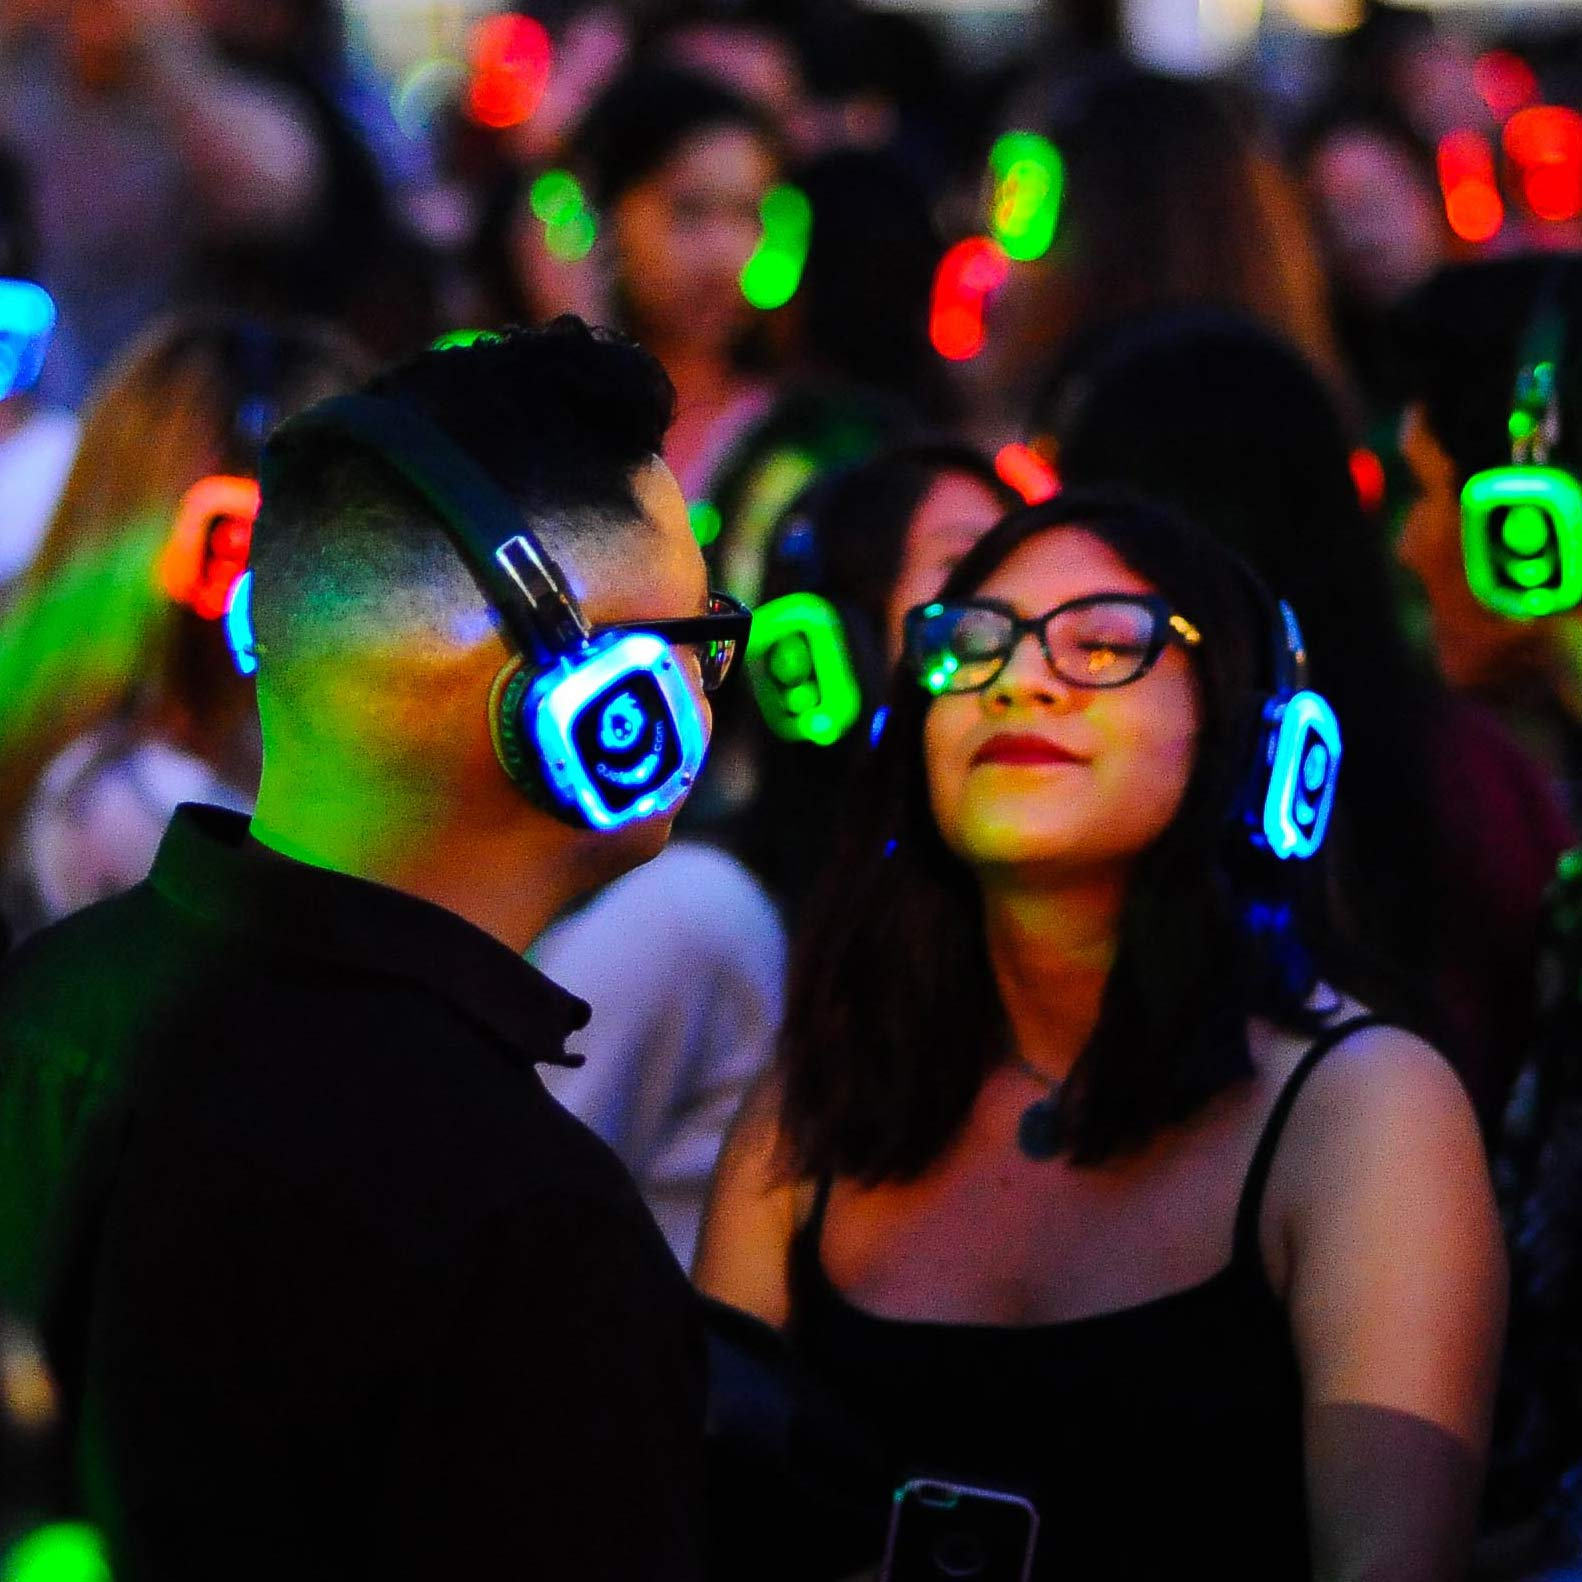 Image of People Dancing at a Silent Disco